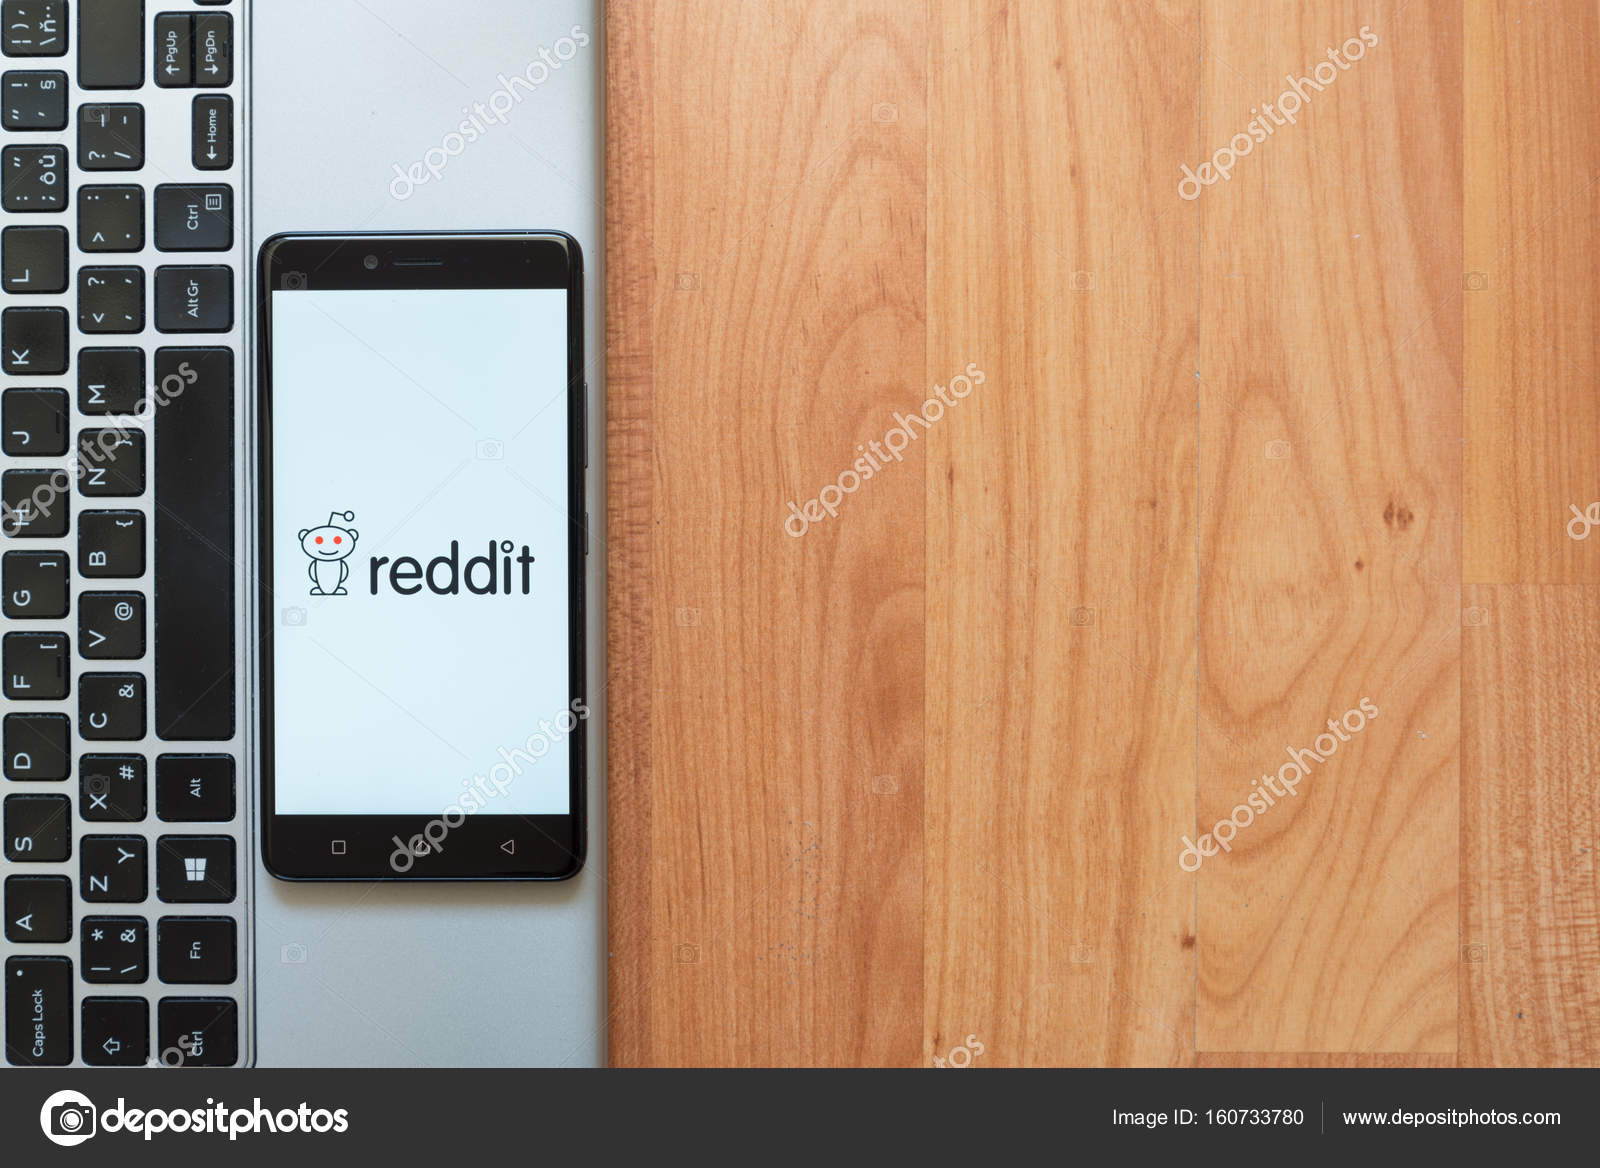 Reddit logo on smartphone – Stock Editorial Photo © Pe3check #160733780